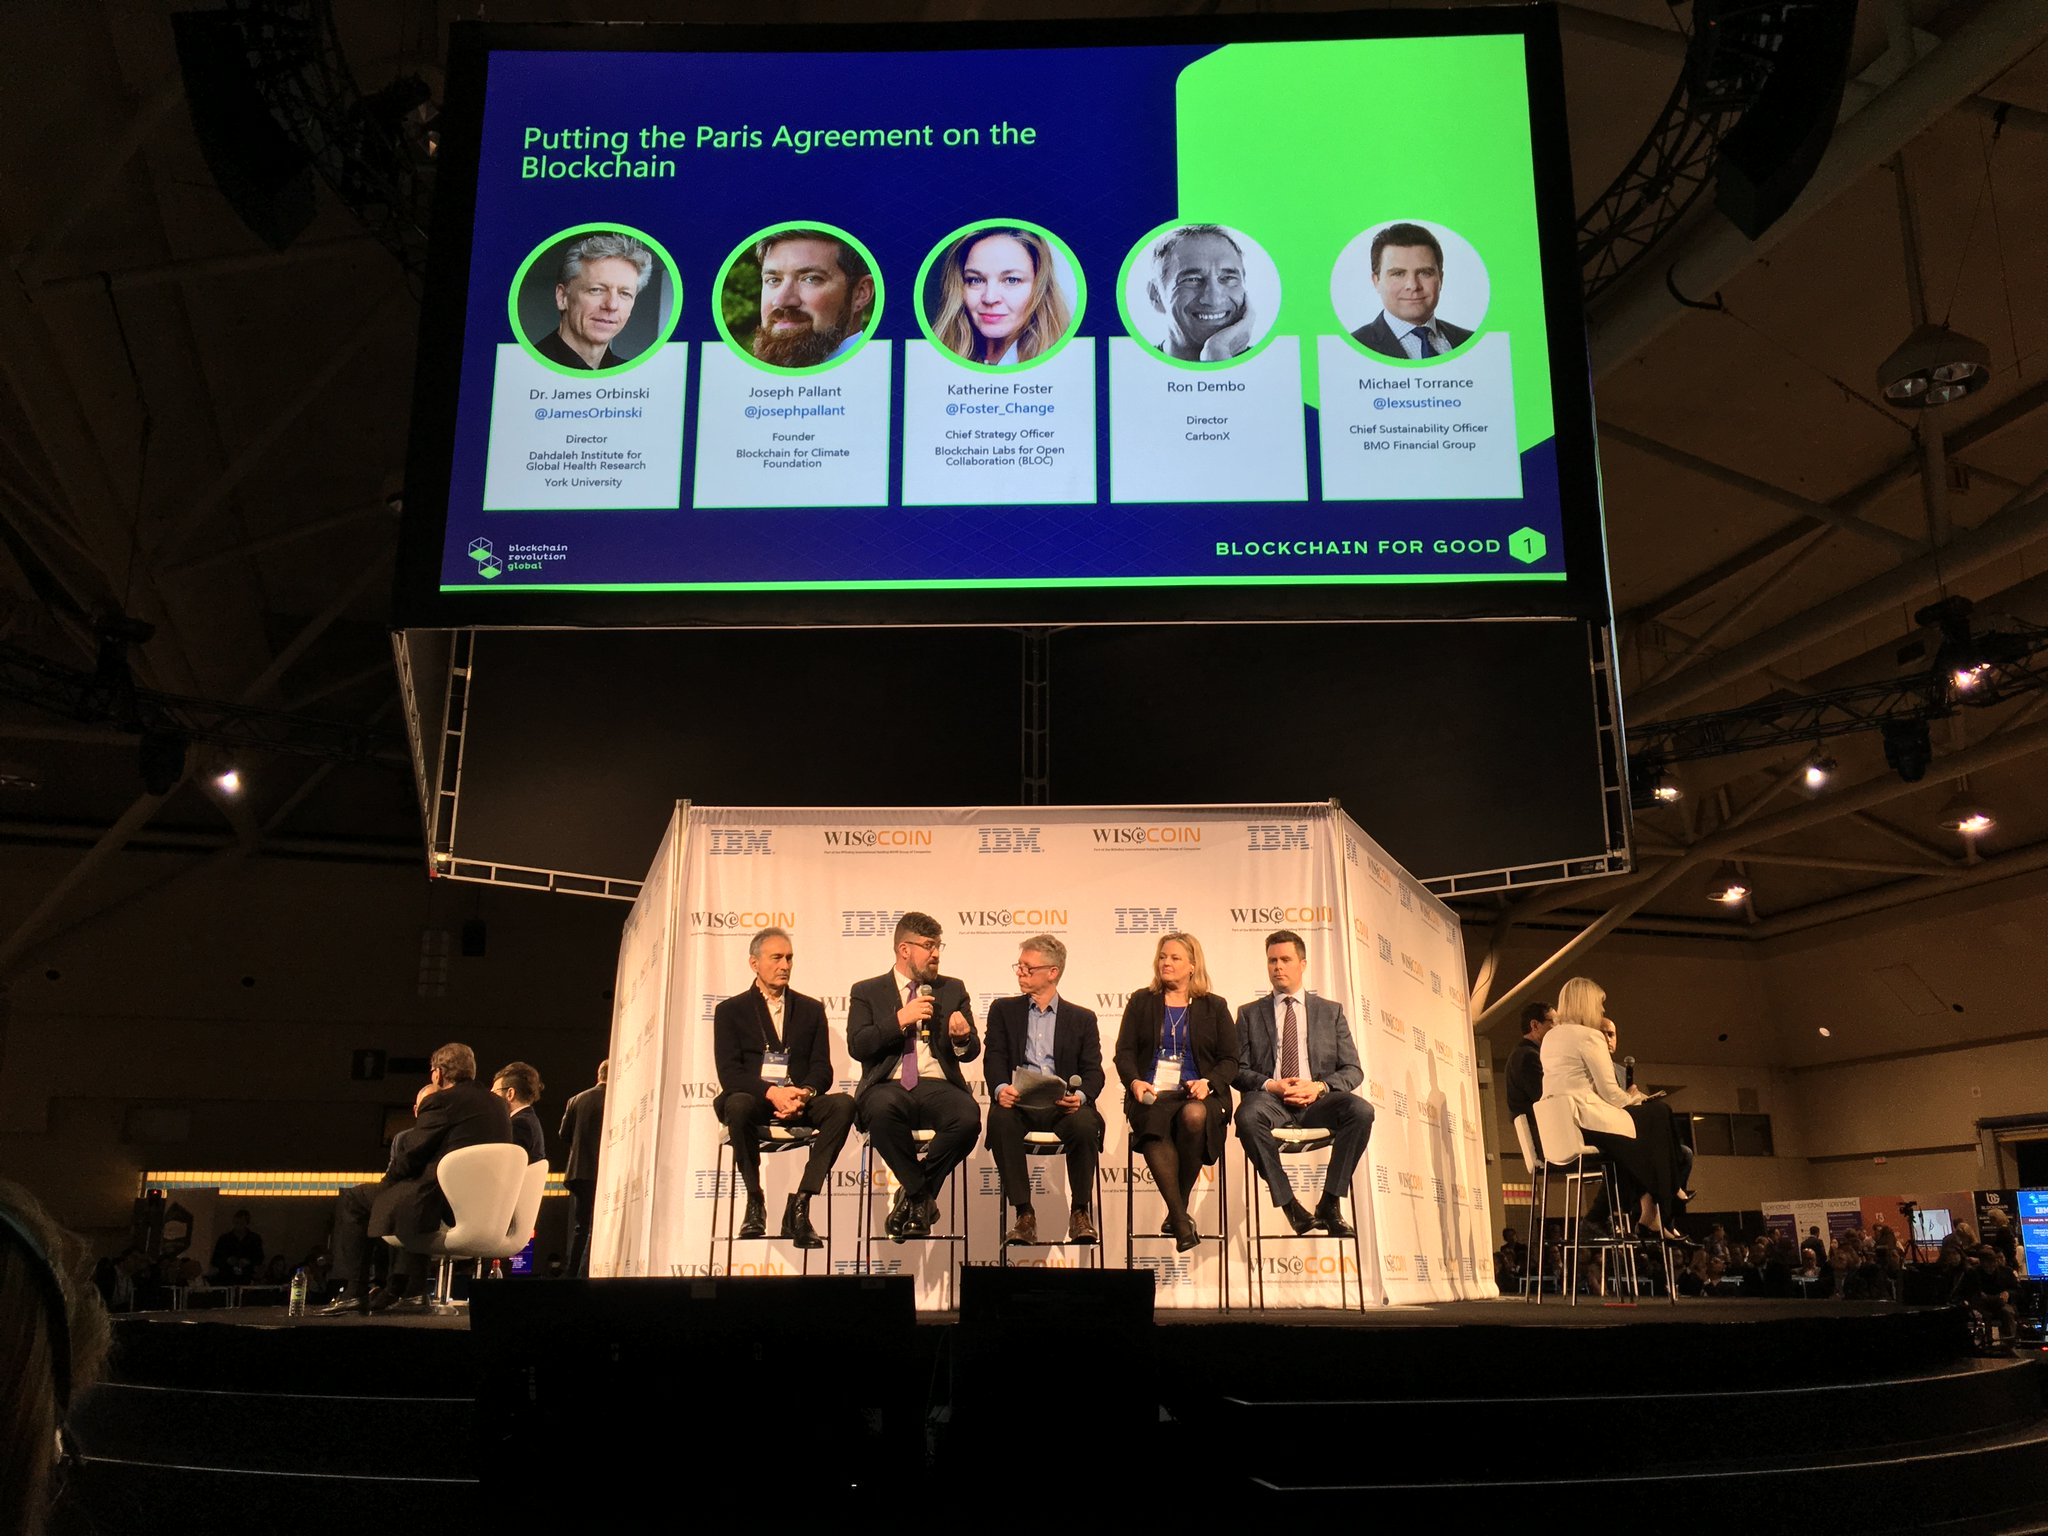 Five people sit in a row on a stage at the Blockchain Revolution Global conference, including Dahdaleh Institute Director James Orbinski and Joseph Pallant